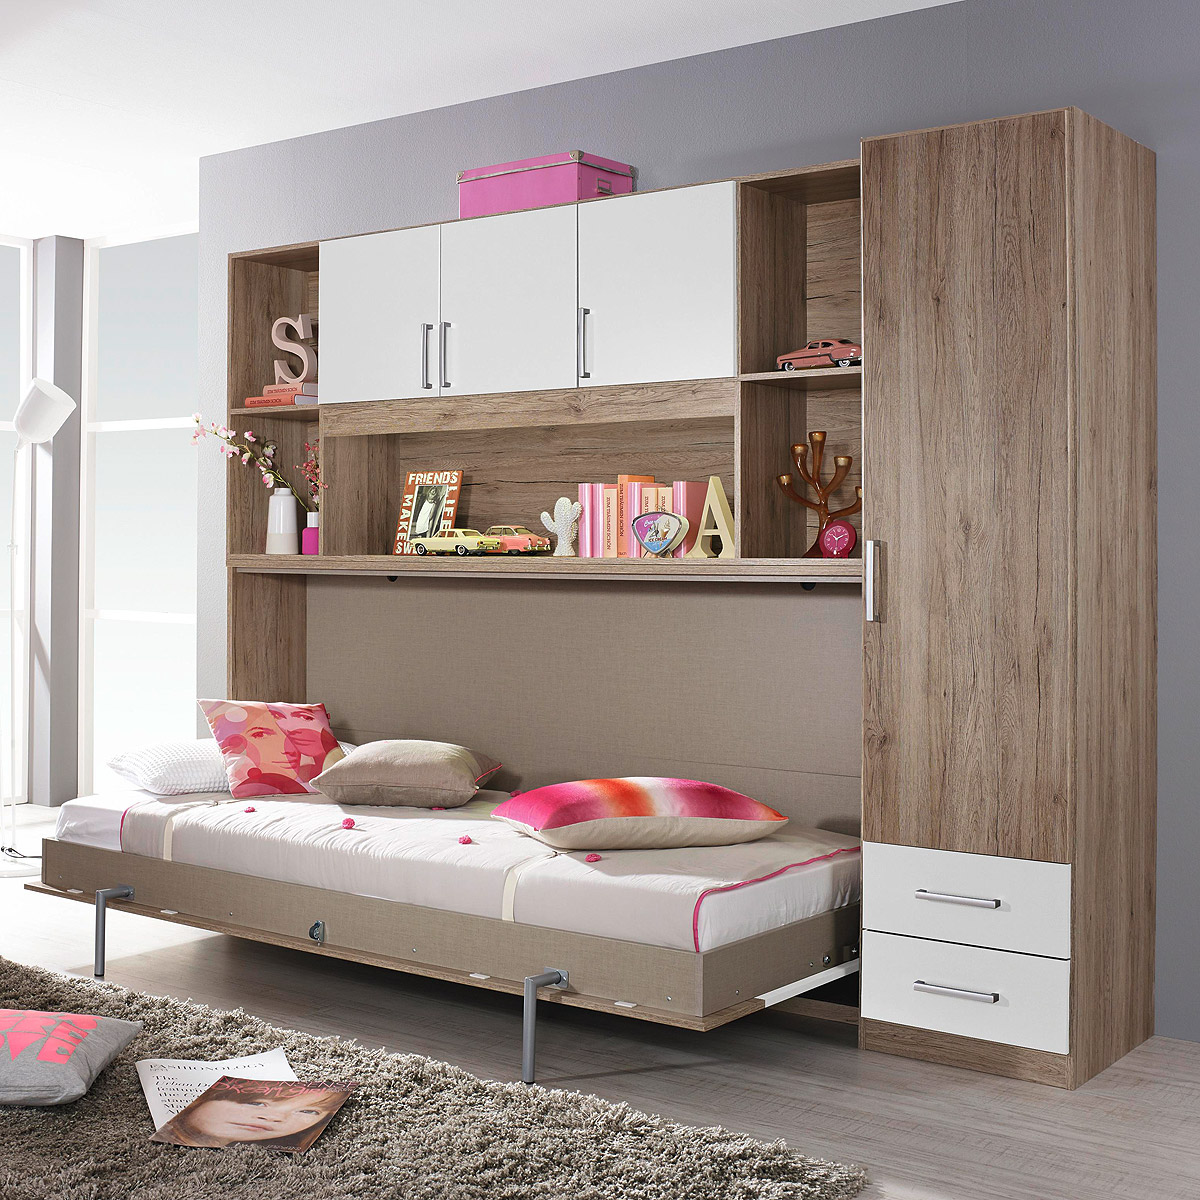 klappbett set albero bett kleiderschrank regal eiche sanremo wei 90x200 cm ebay. Black Bedroom Furniture Sets. Home Design Ideas